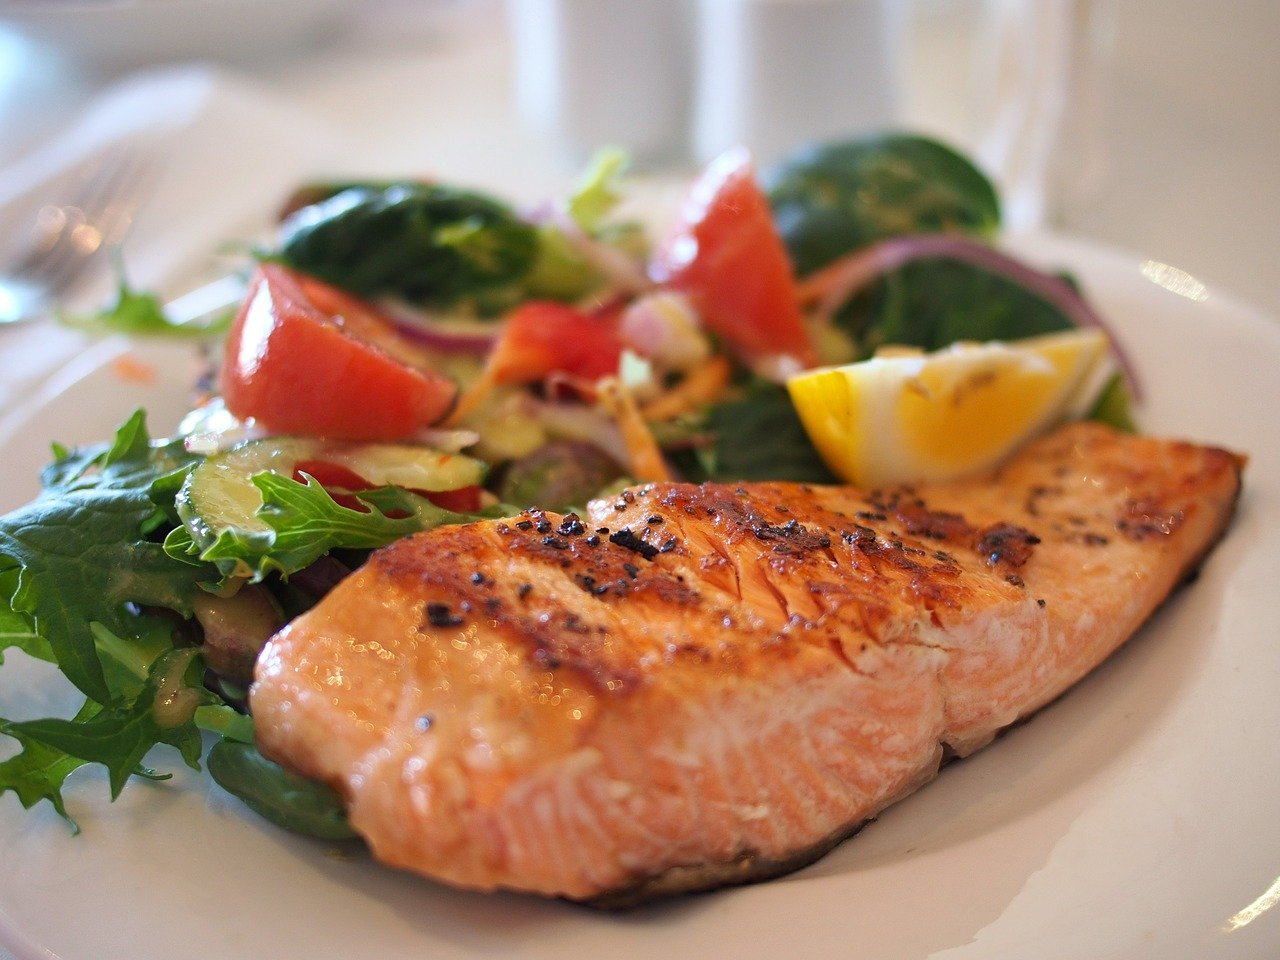 10 Foods To Eat For Heart Health